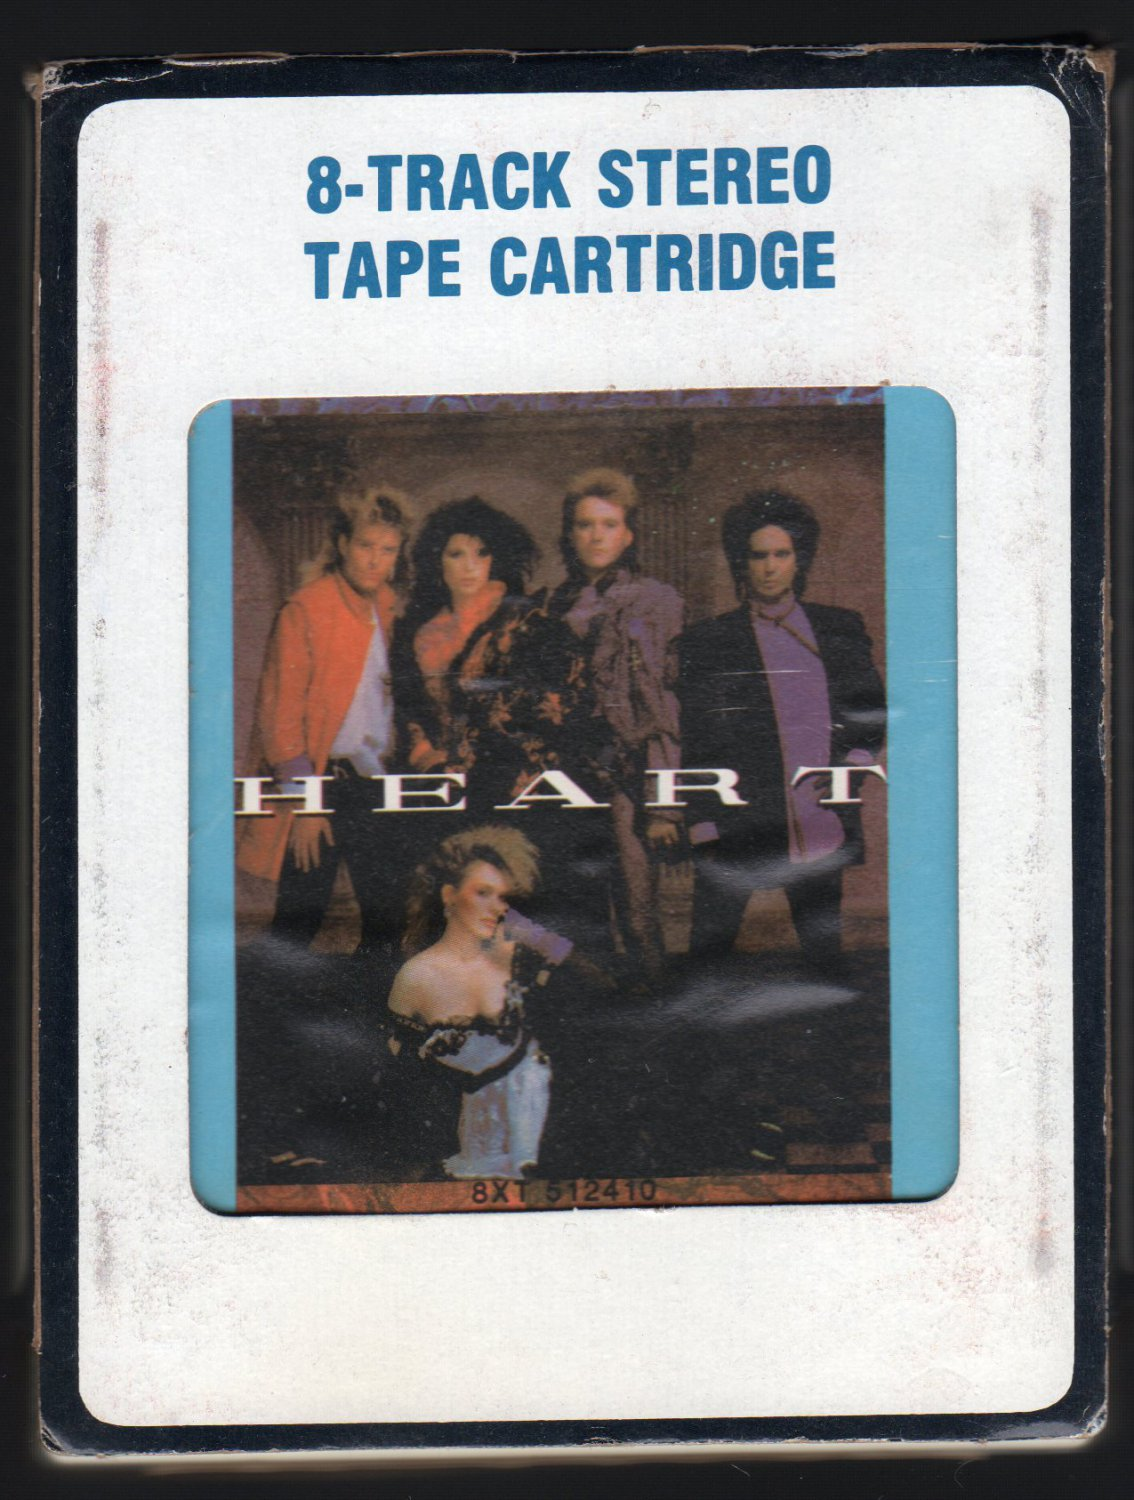 Heart - Heart 1985 CRC A7 8-TRACK TAPE